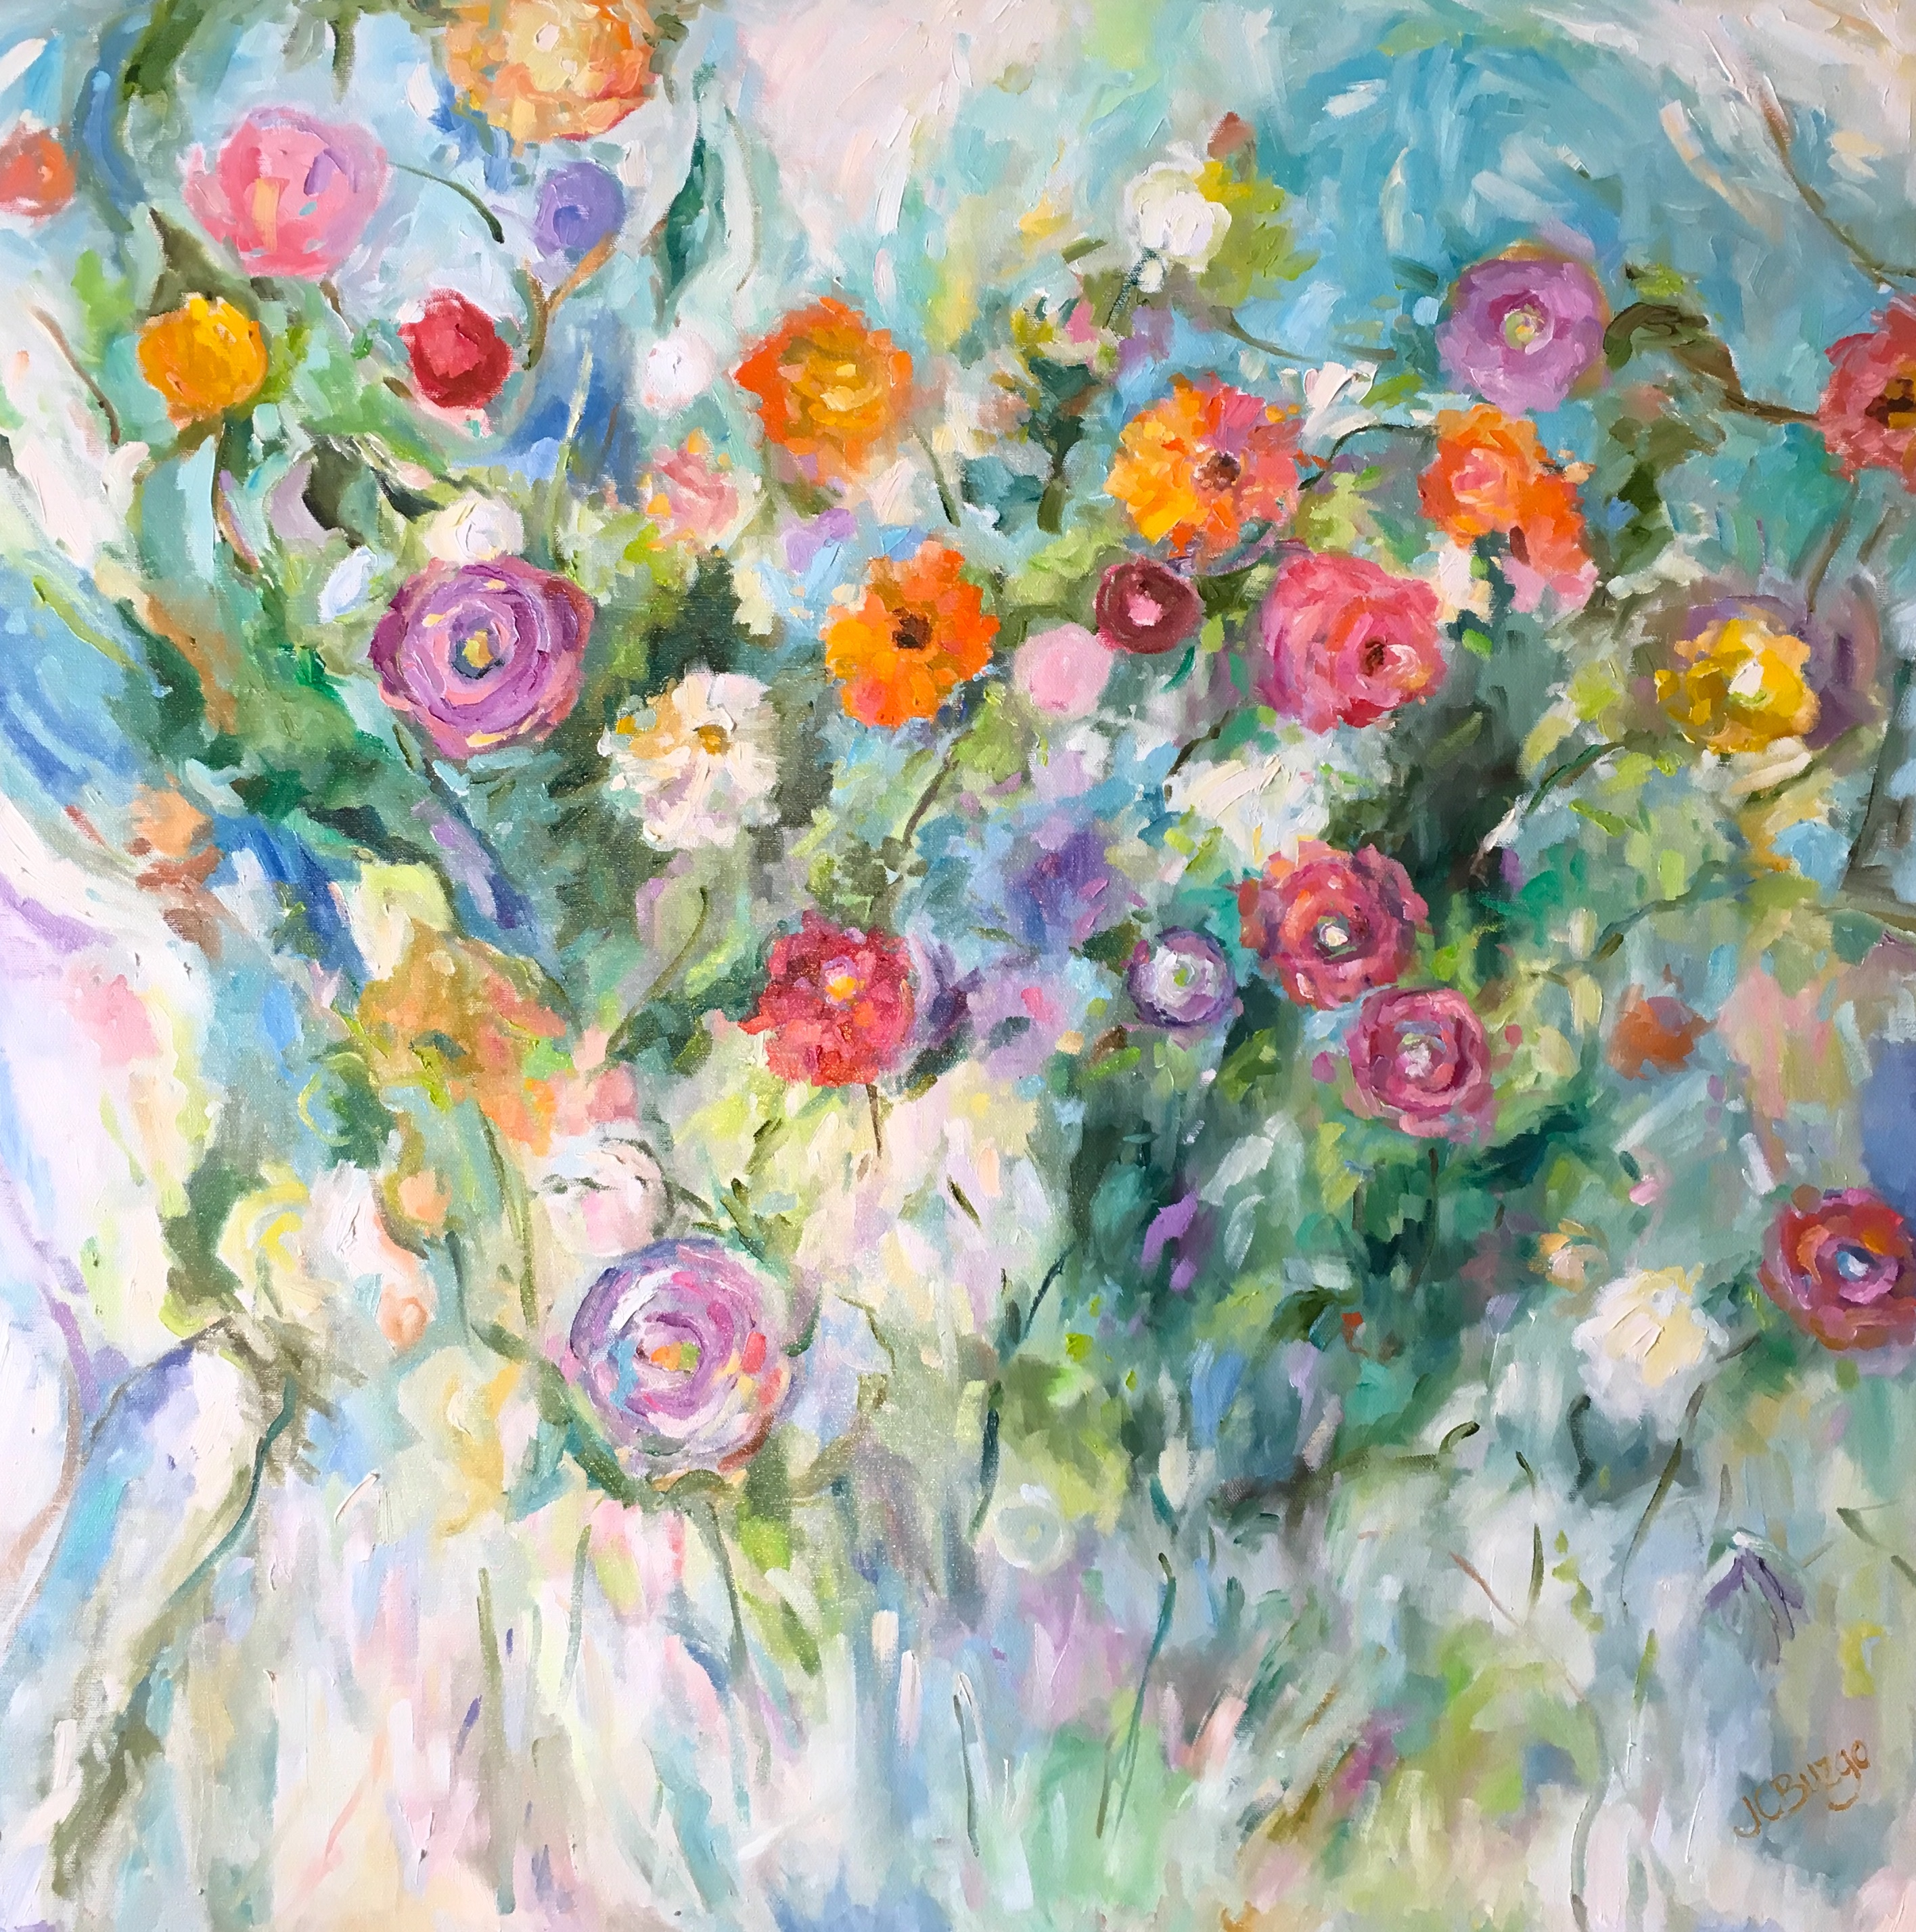 FLORAL EMBRACE by Jean Childs Buzgo - 30 x 30 in., o/c • SOLD